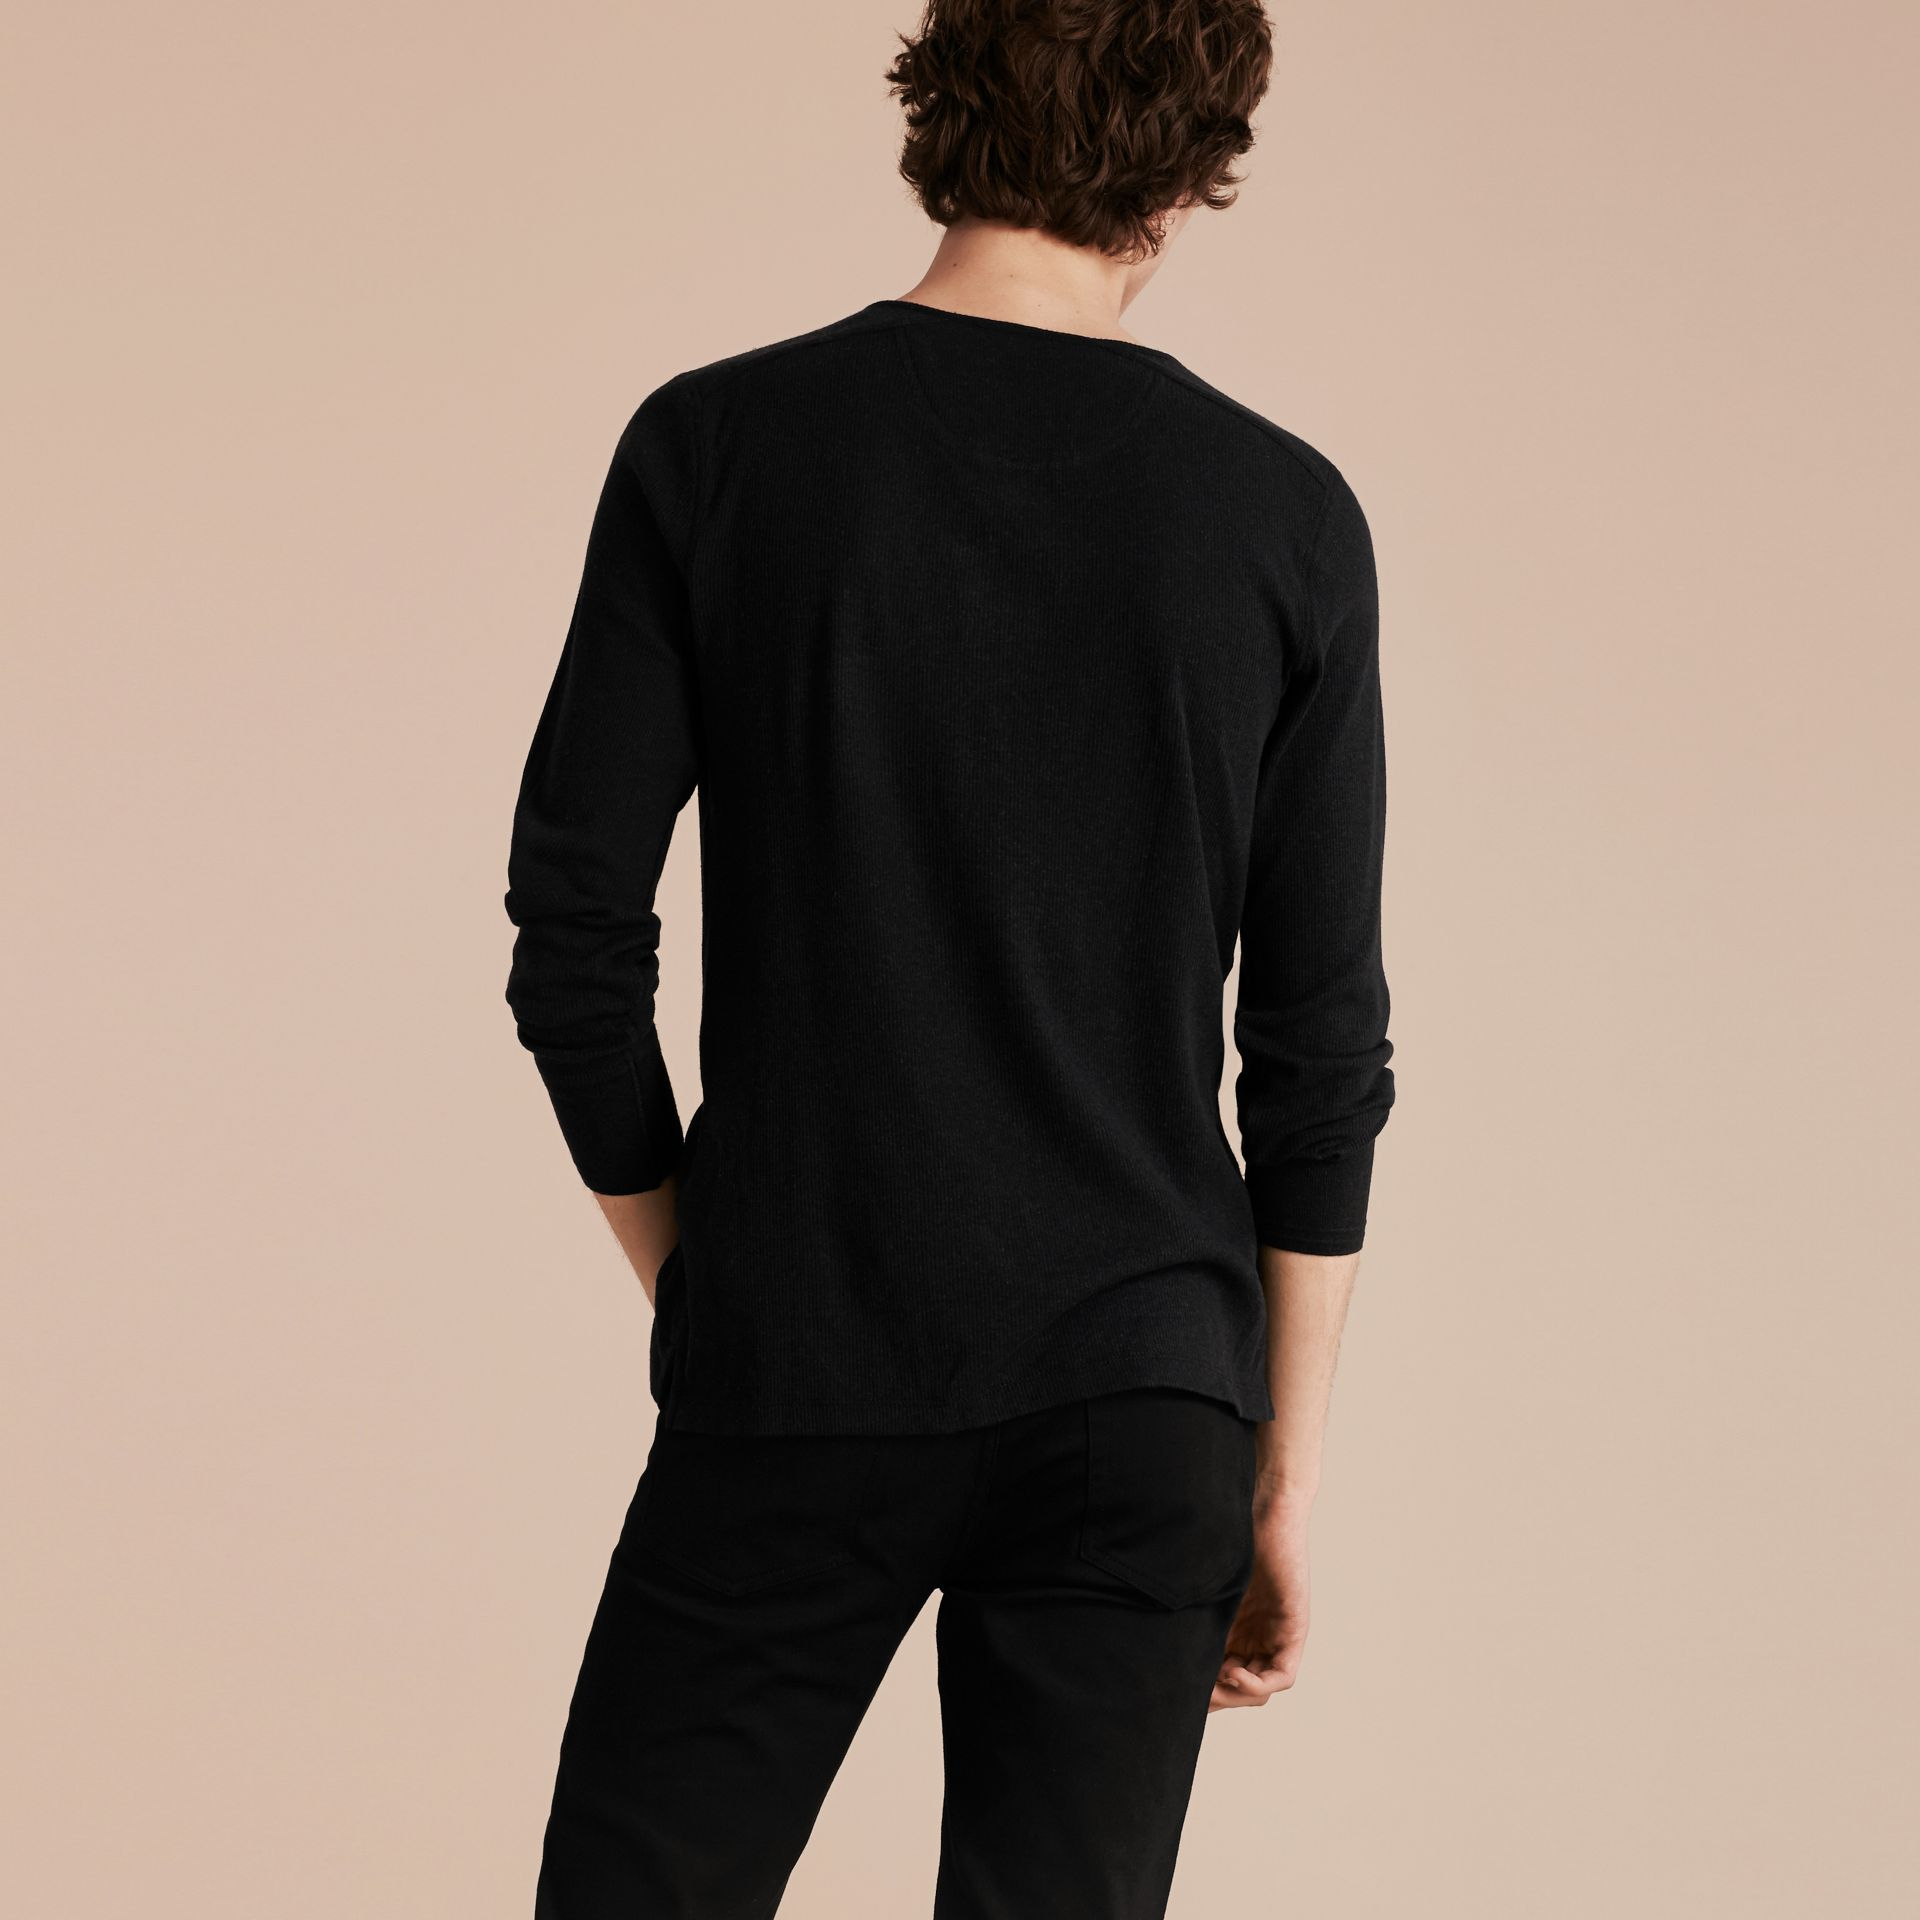 Black Ribbed Cotton Wool Henley Top Black - gallery image 3